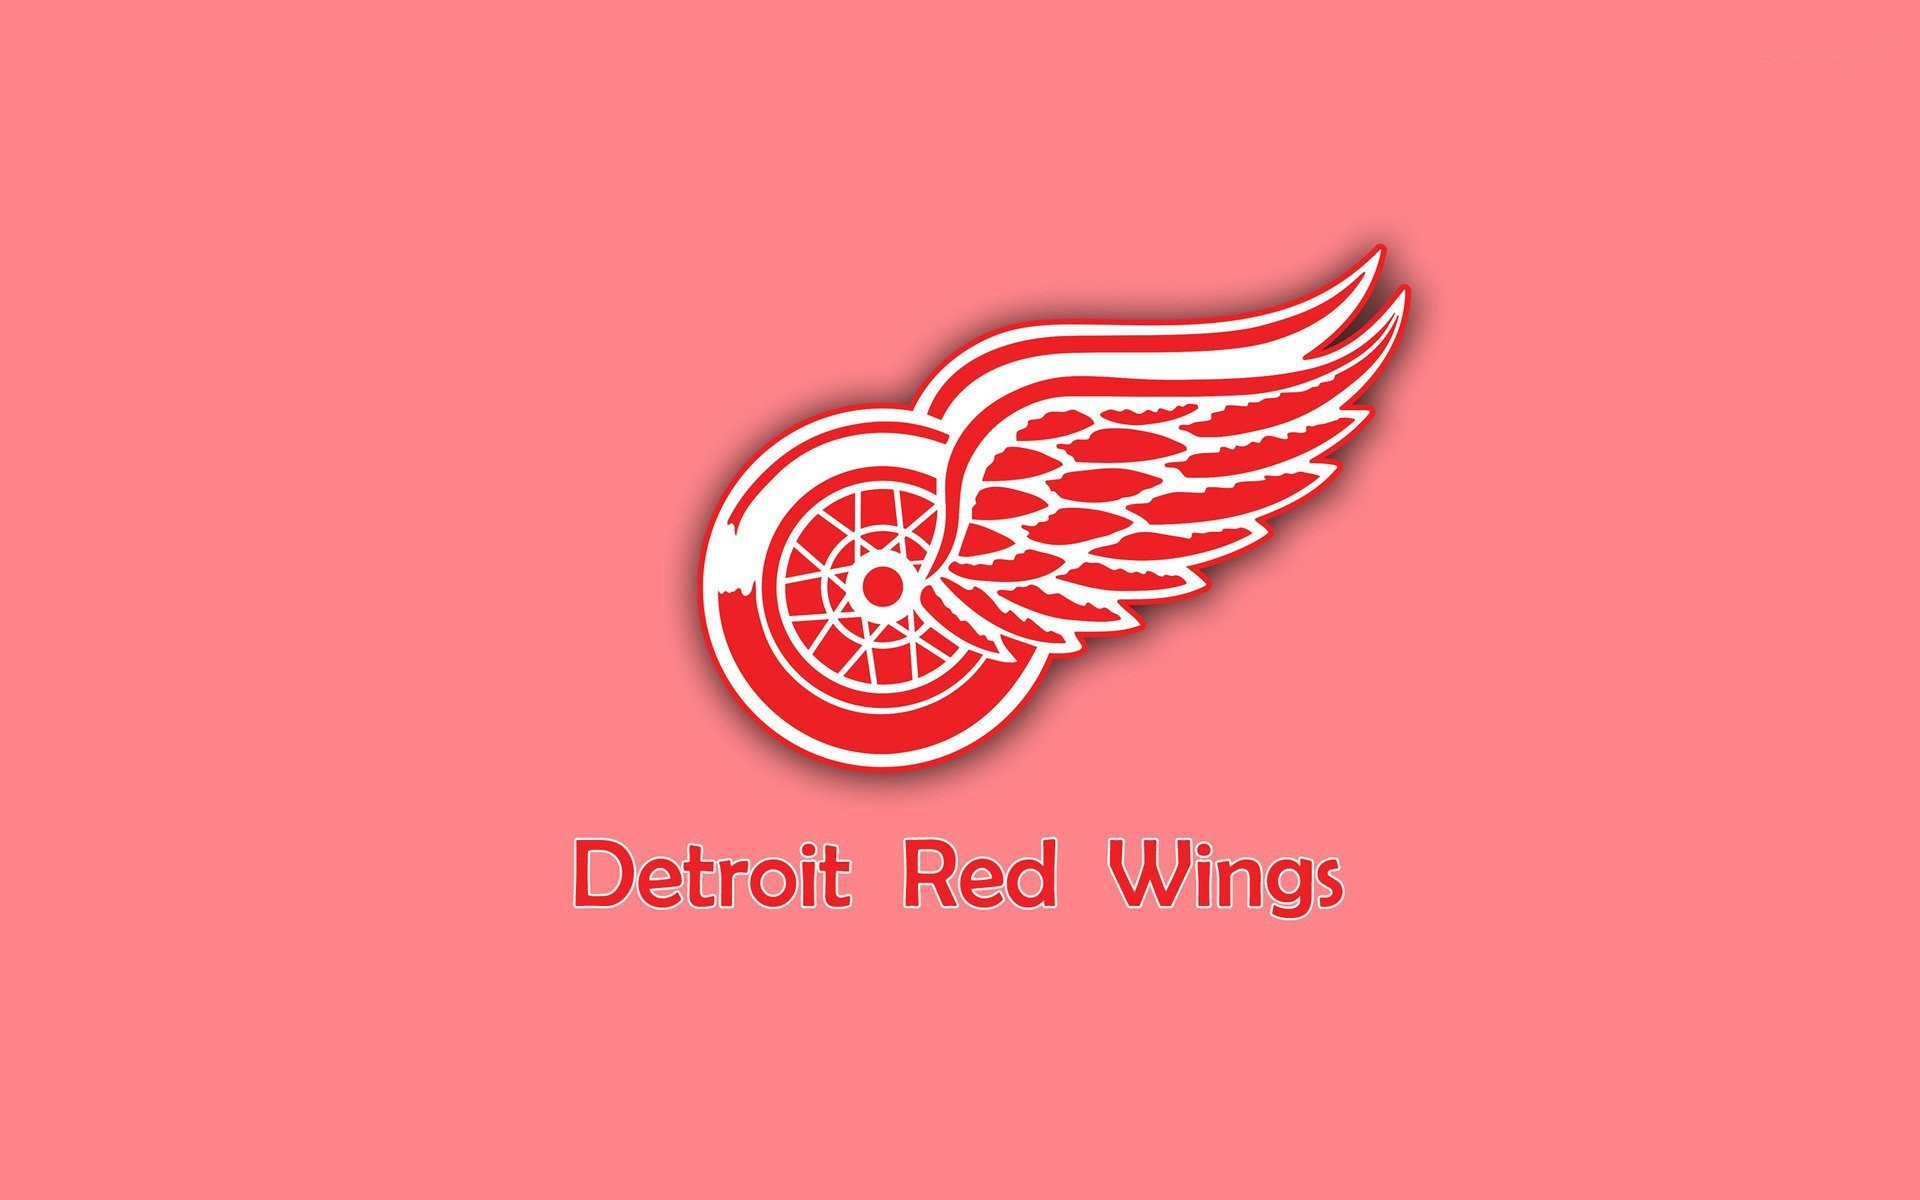 Red wings wallpapers 73 images 2560x2128 sports detroit red wings wallpaper voltagebd Choice Image